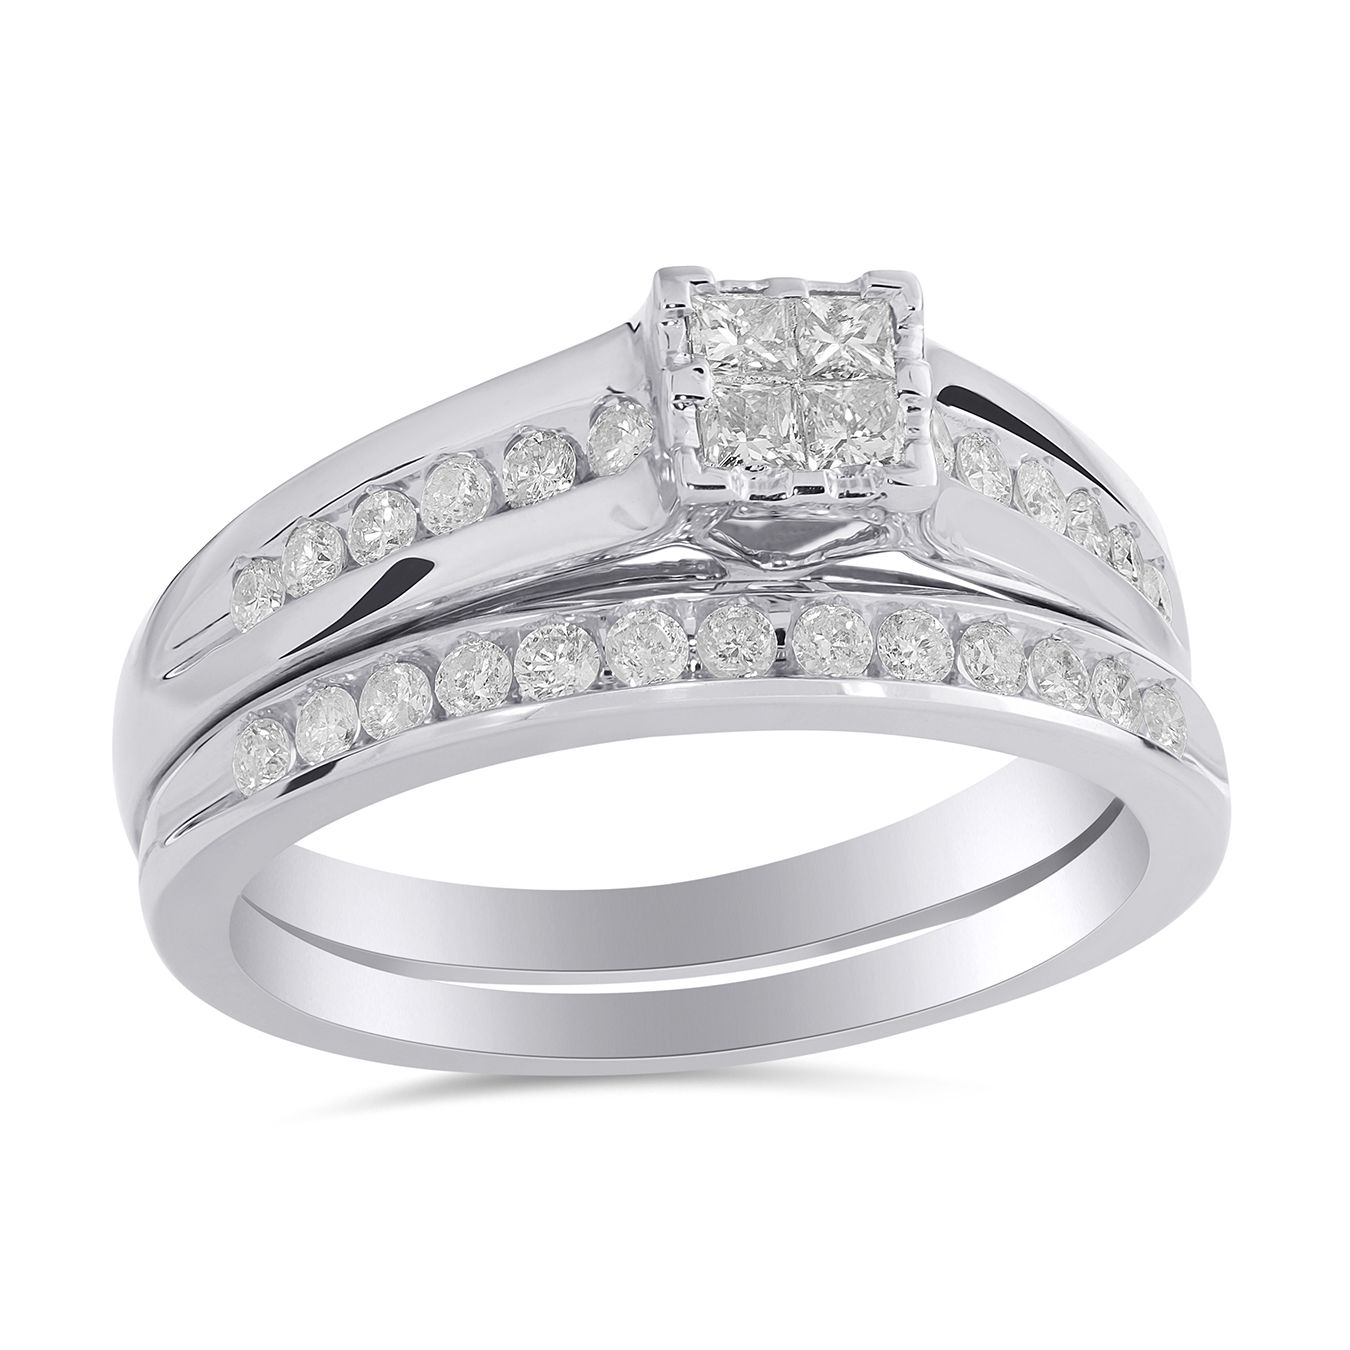 Classic & Elegant | Watches, Purses & Jewellery | Pinterest | Bridal For 2017 Marquise And Princess Cut Composite Diamond Six Stone Anniversary Bands (View 11 of 15)